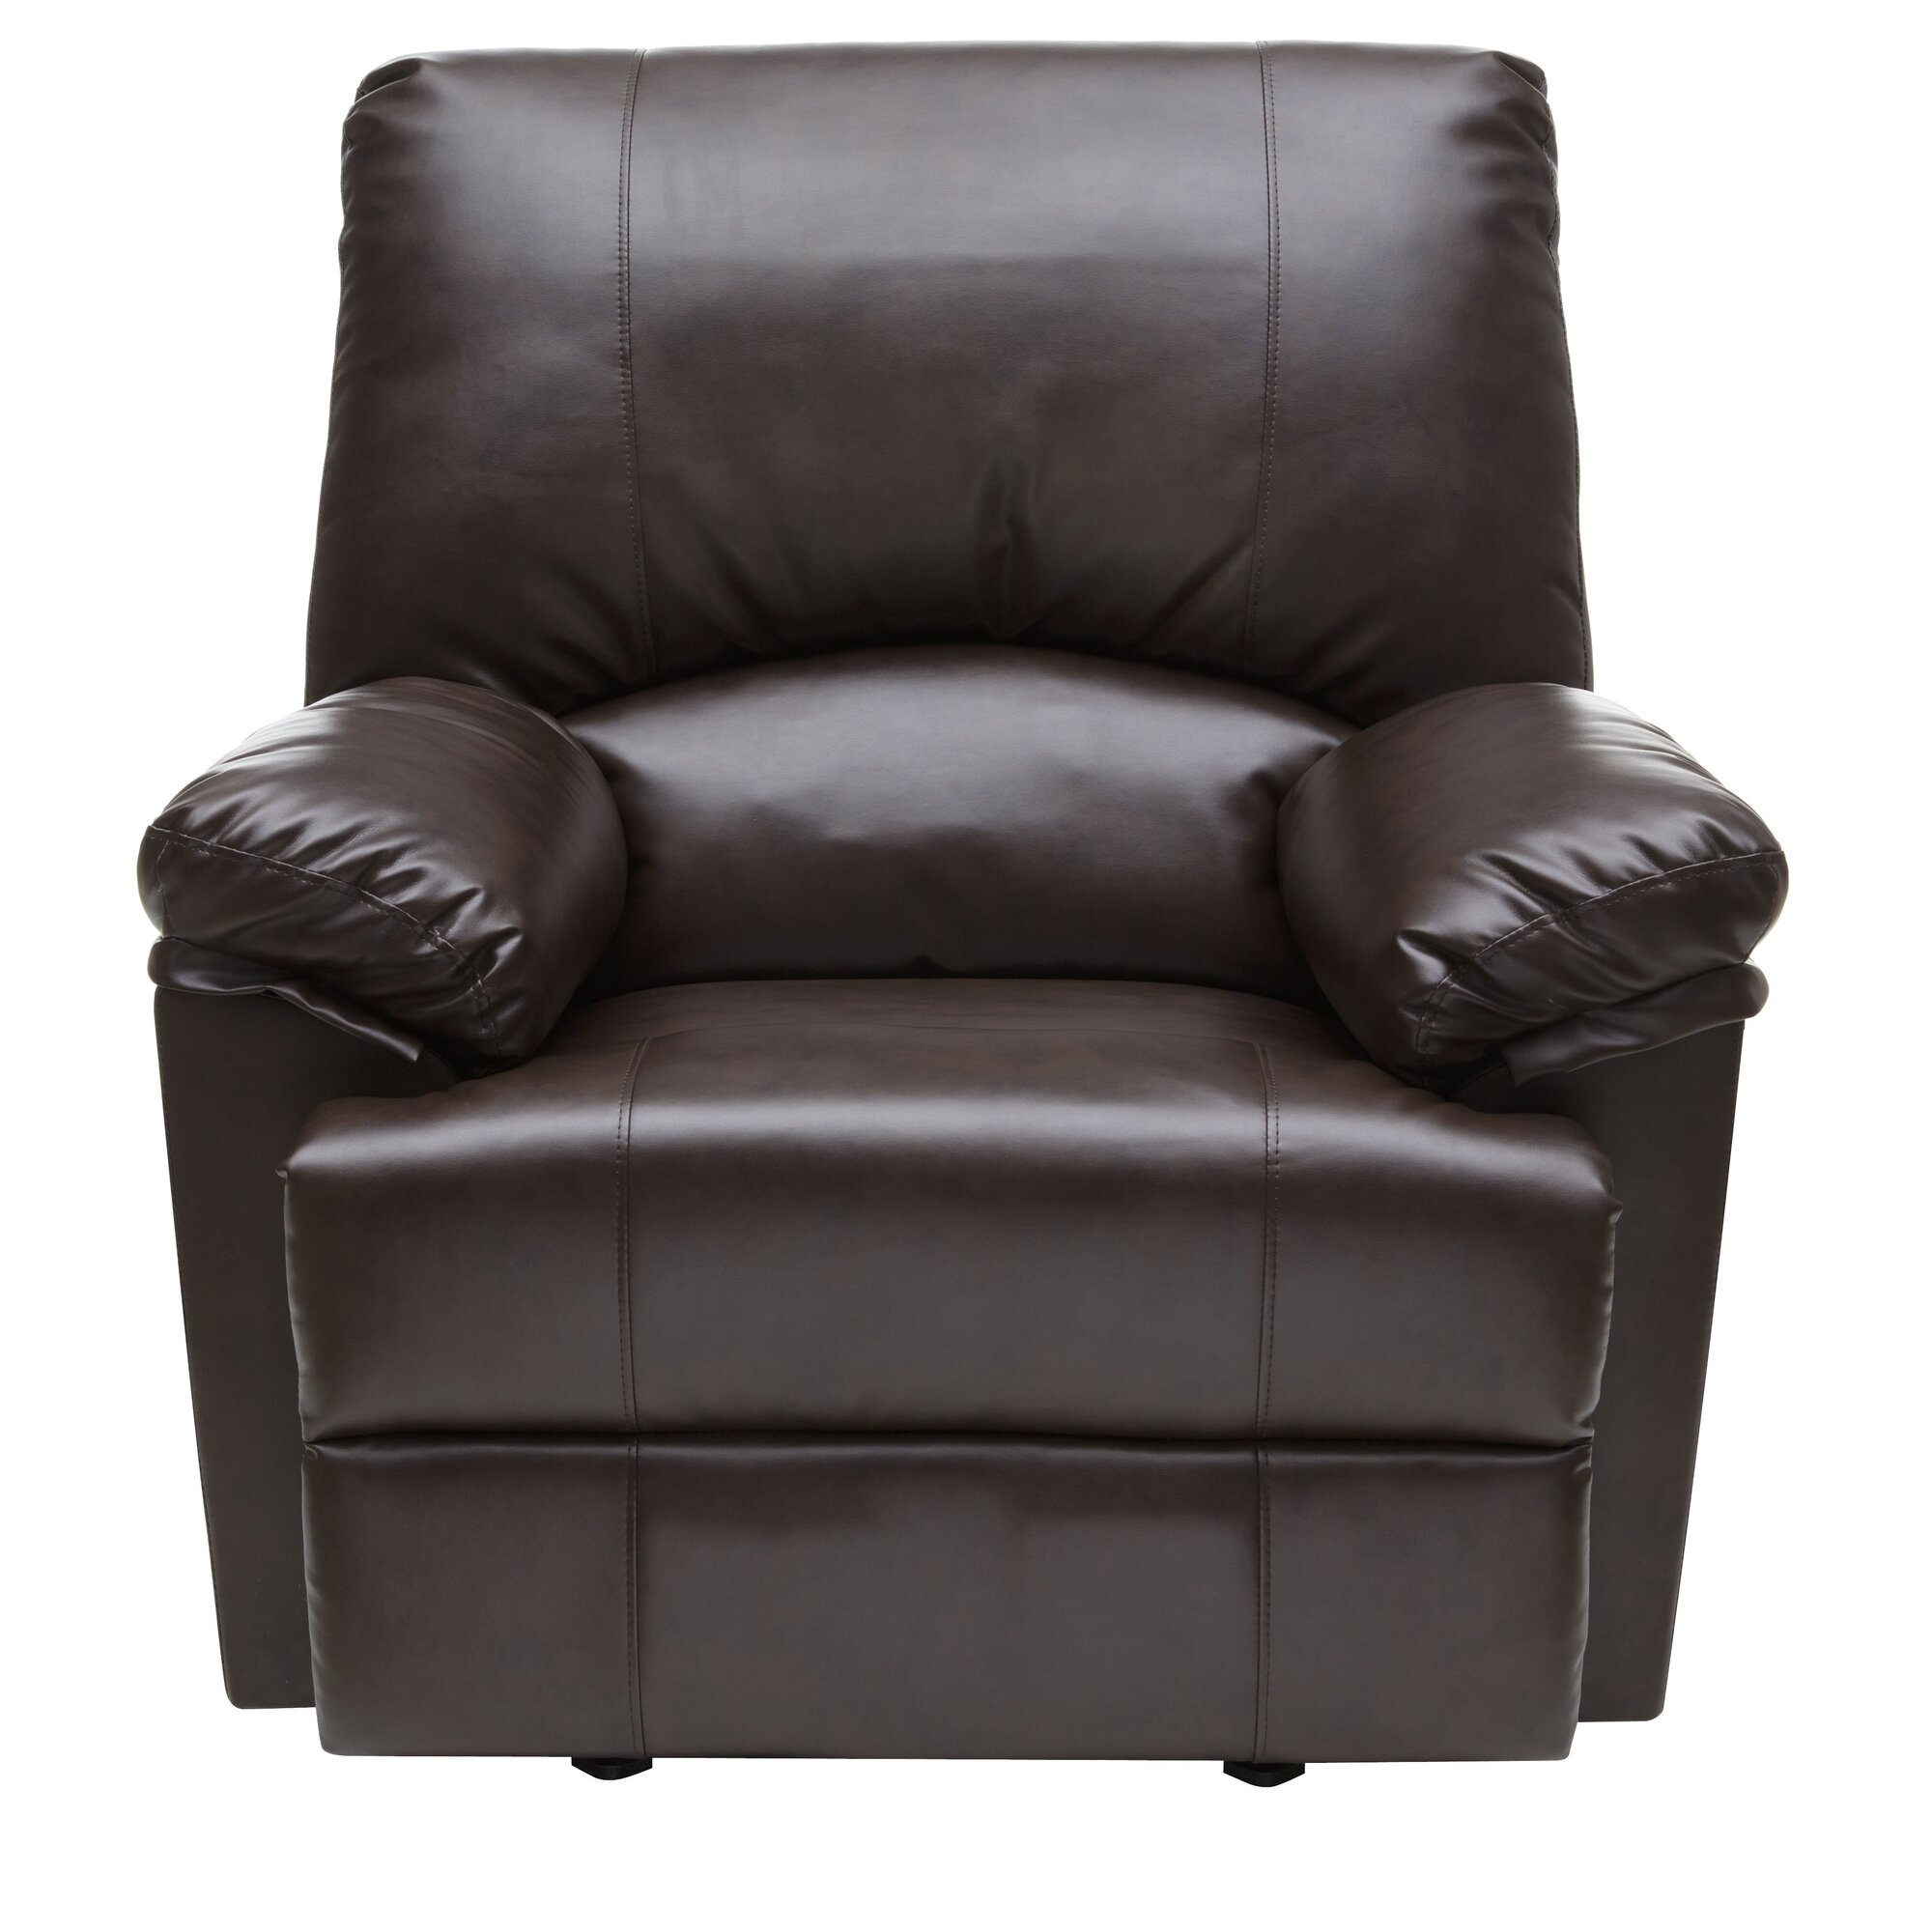 Relaxzen Marbled Leather Rocker Recliner With Heat And